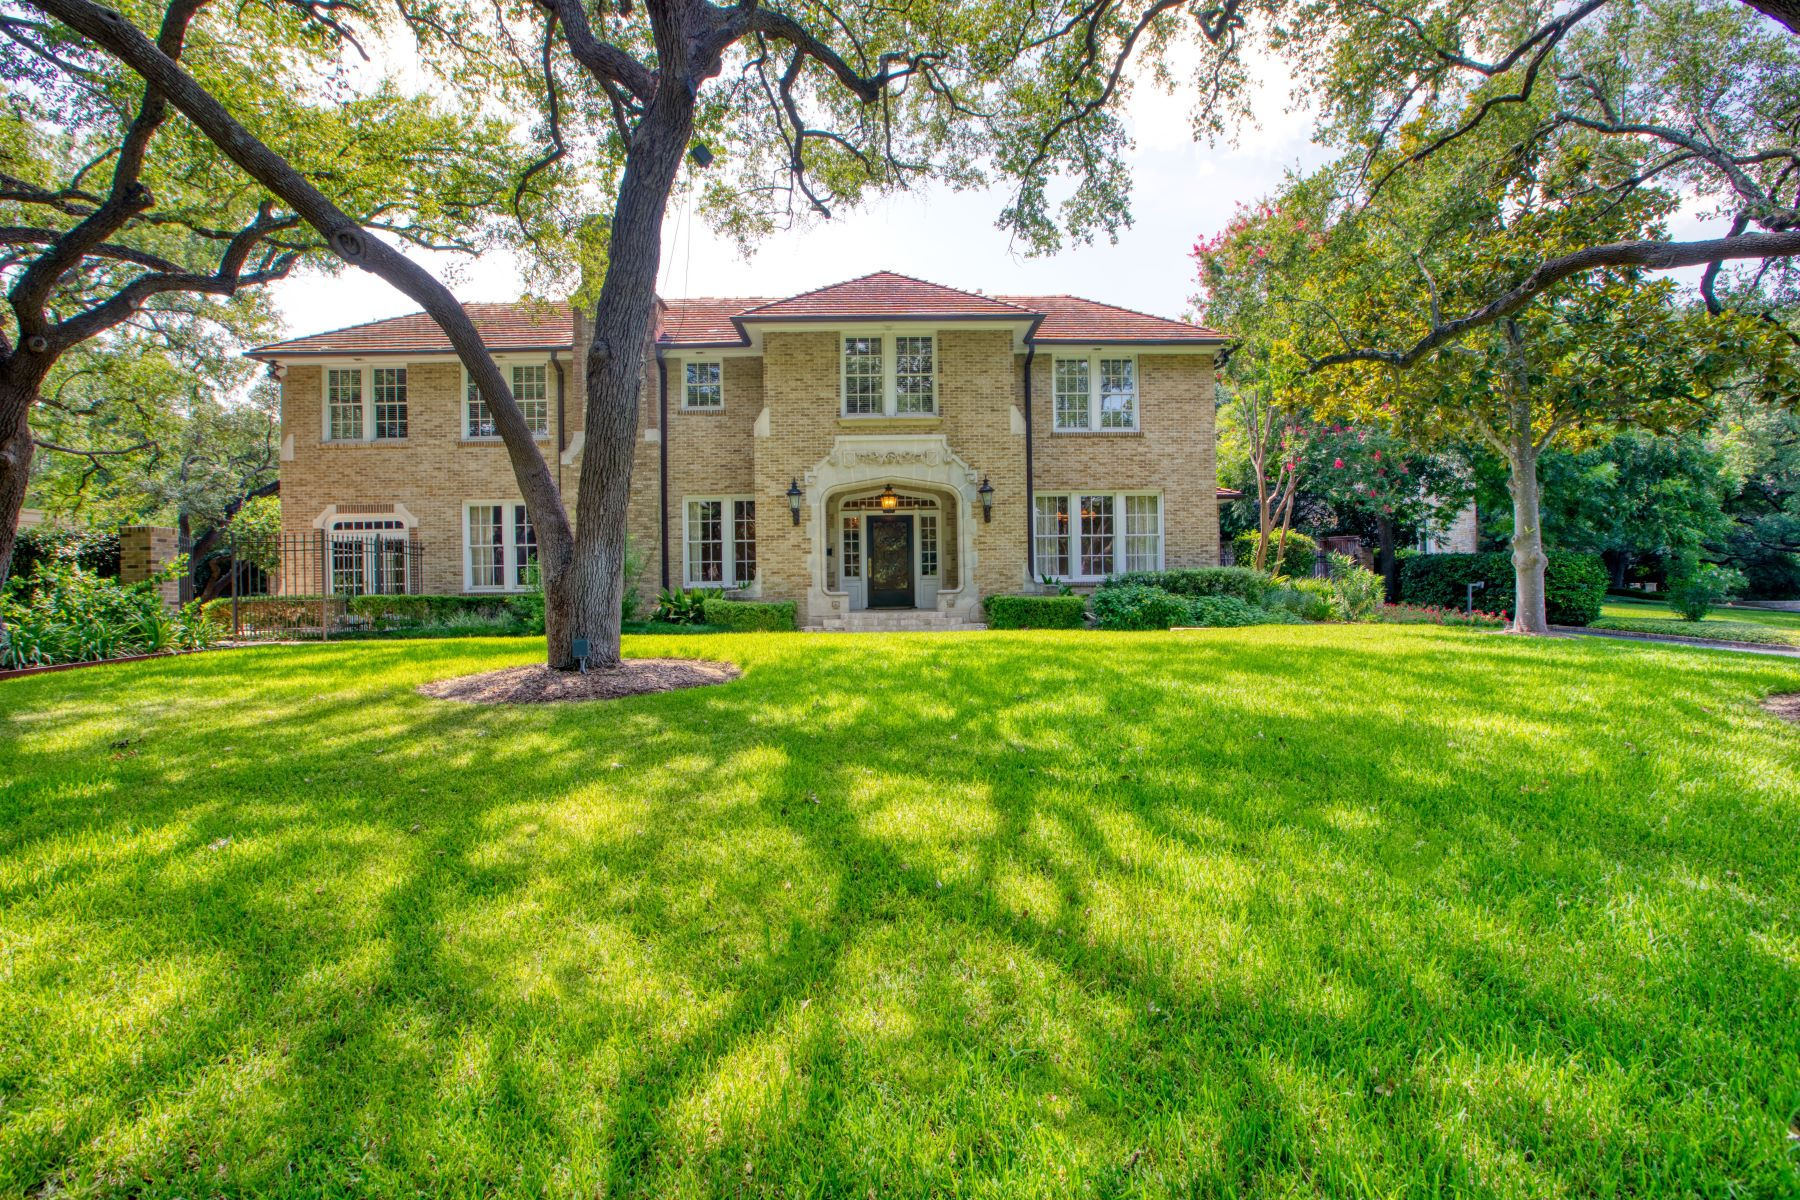 Single Family Homes for Sale at Magnificent Estate in Olmos Park 715 Contour Drive Olmos Park, Texas 78212 United States